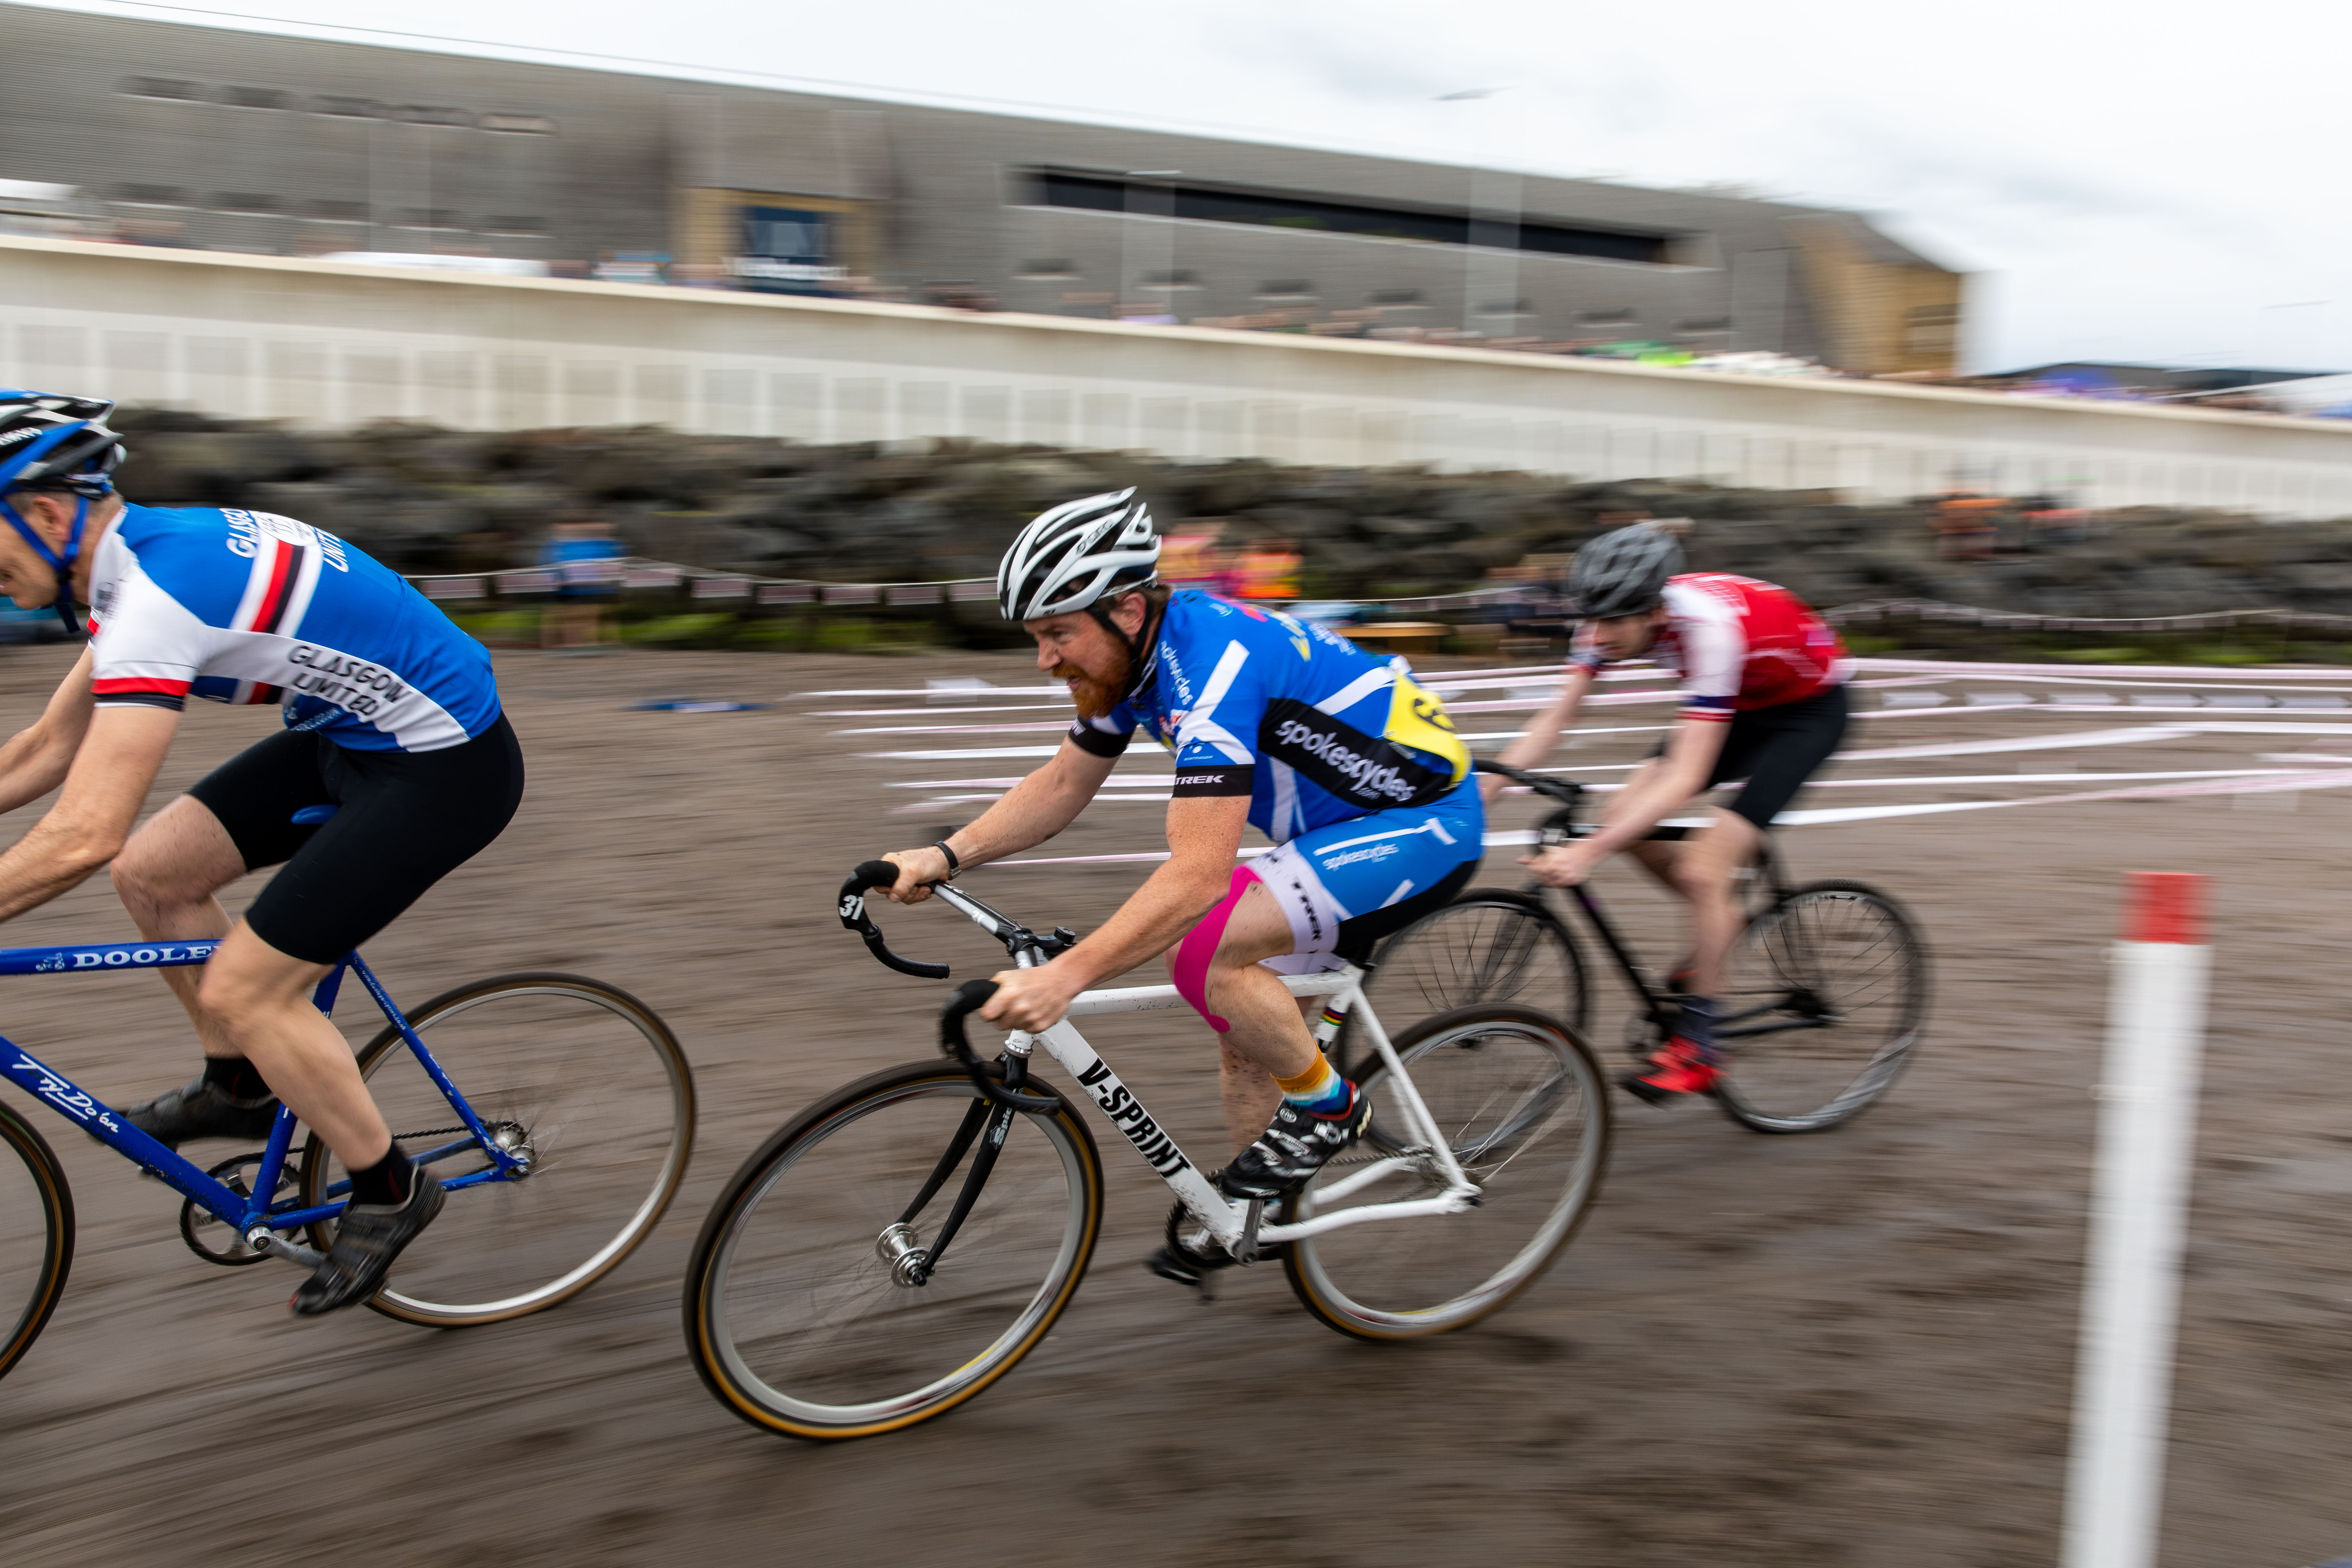 Cyclists in action on the sand at Kirkcaldy Beach Highland Games